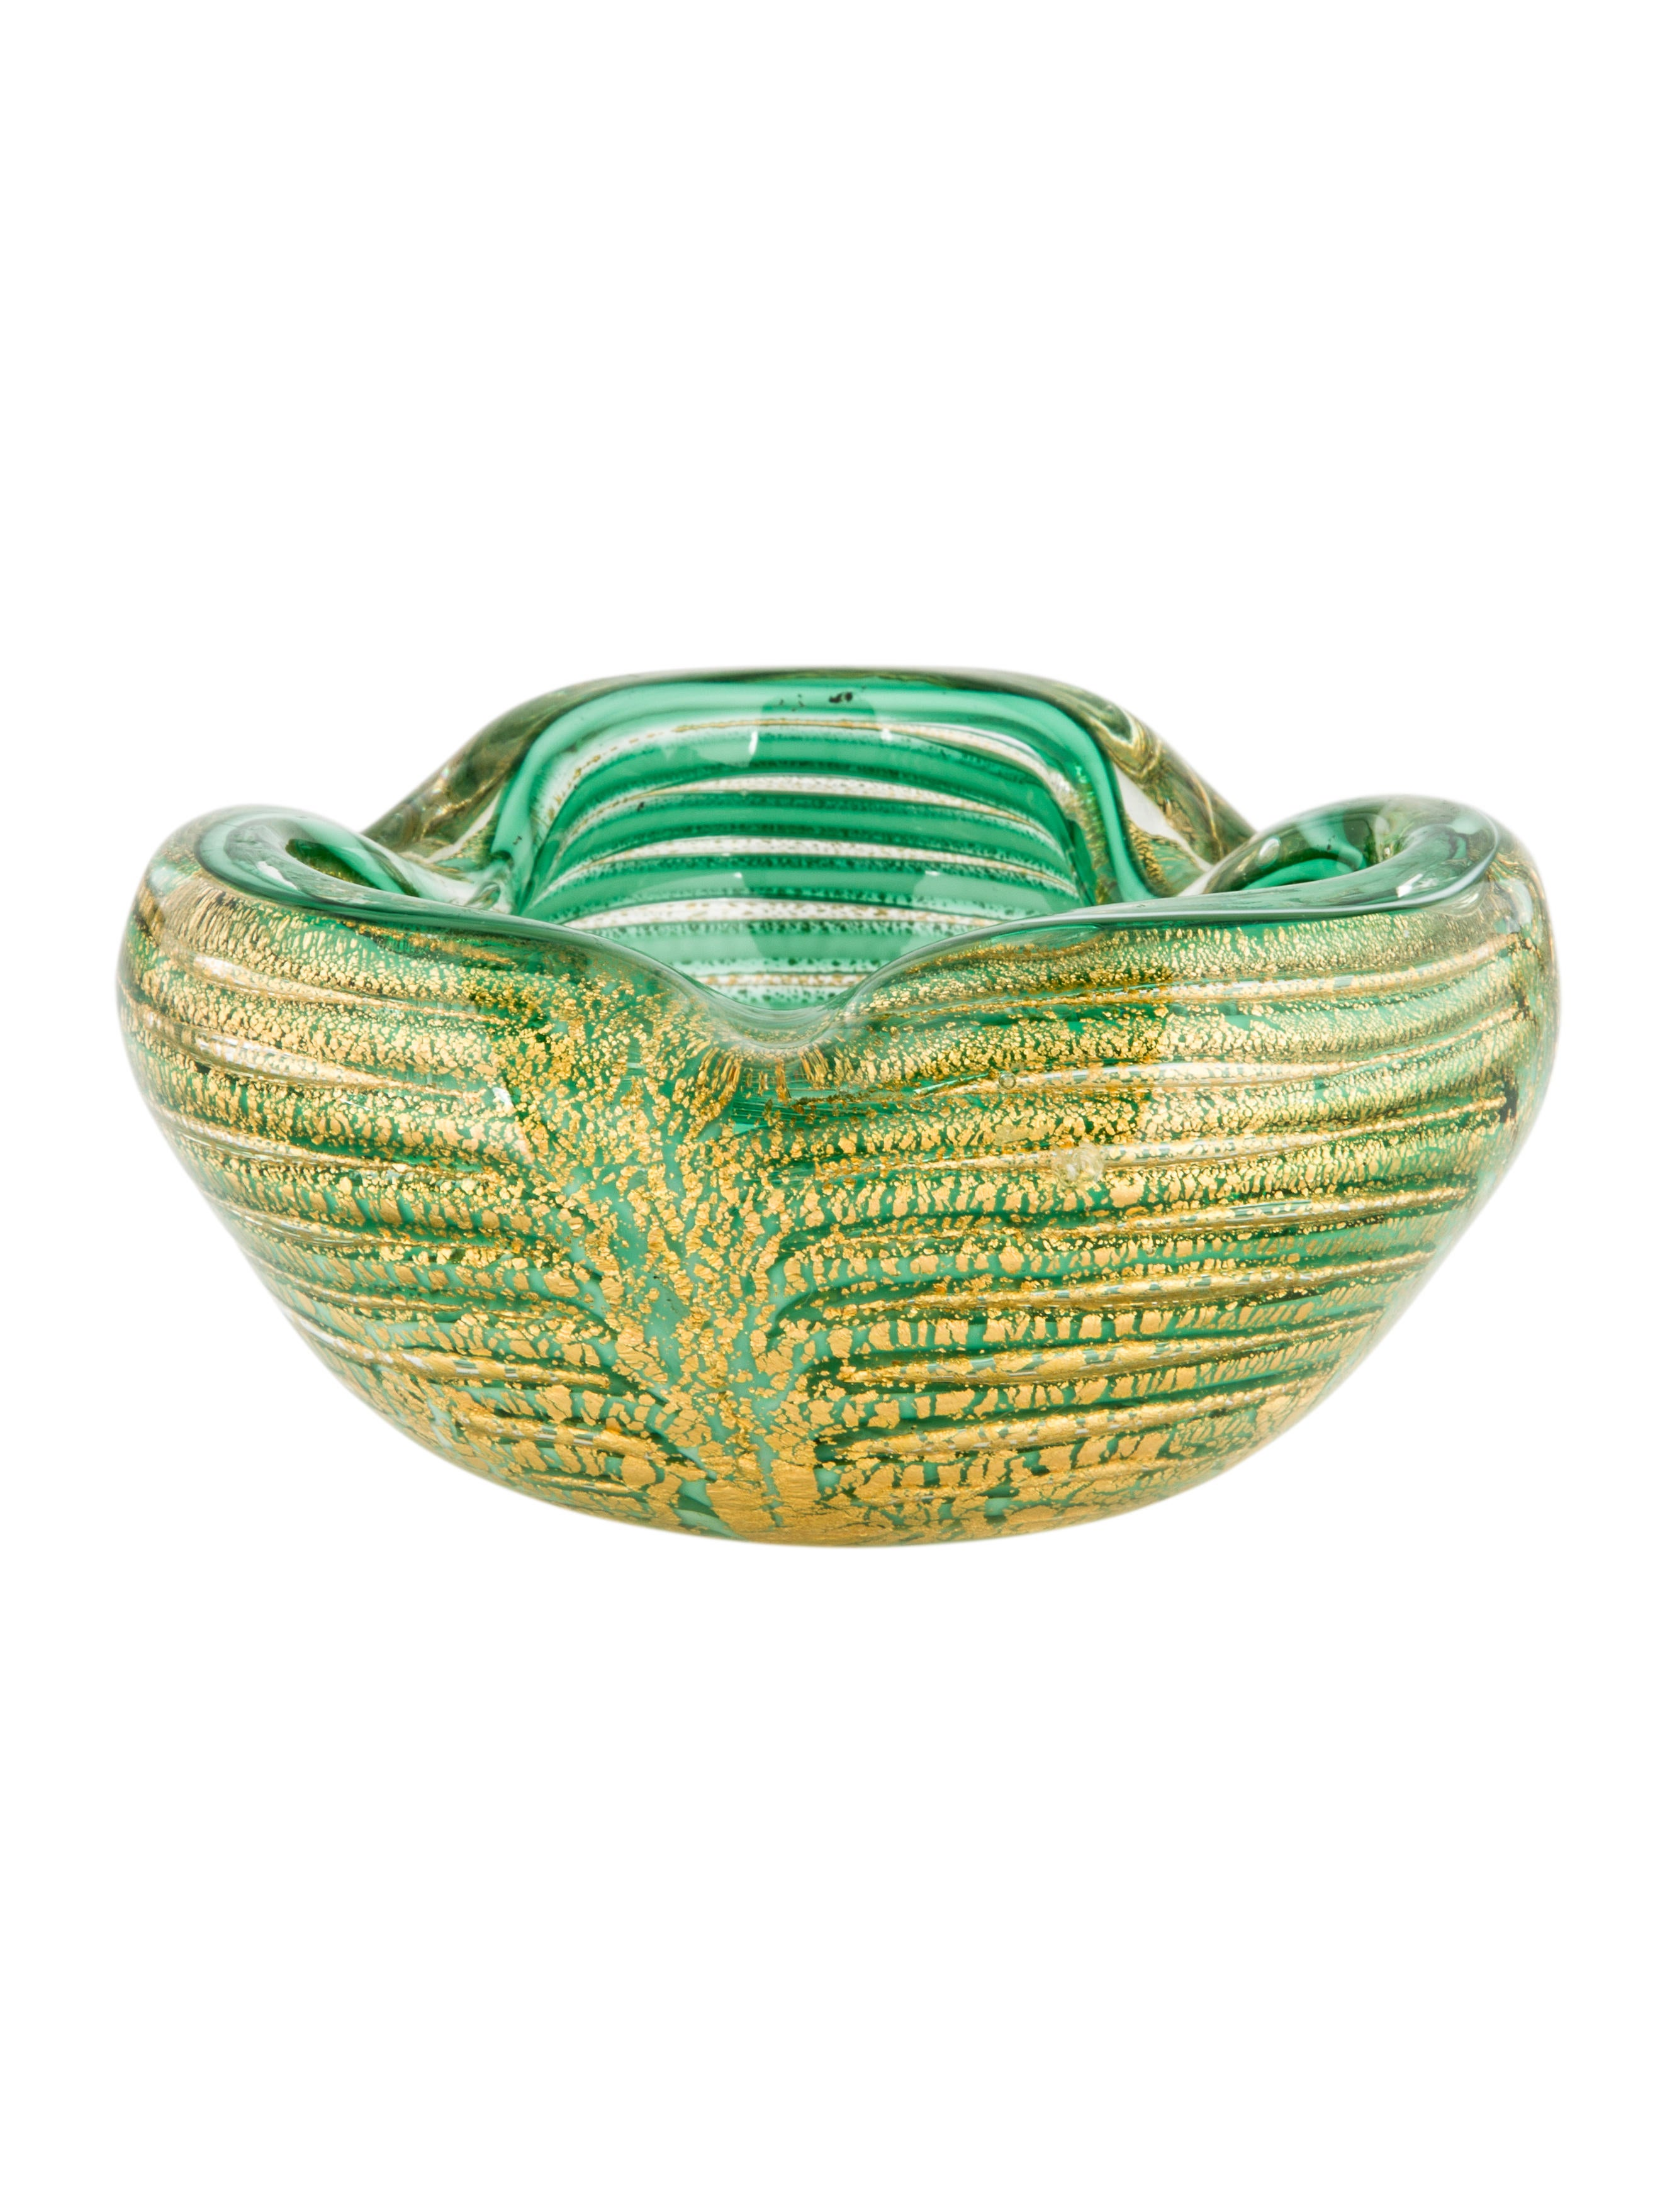 Decorative Glass Product : Art glass bowl decor and accessories the